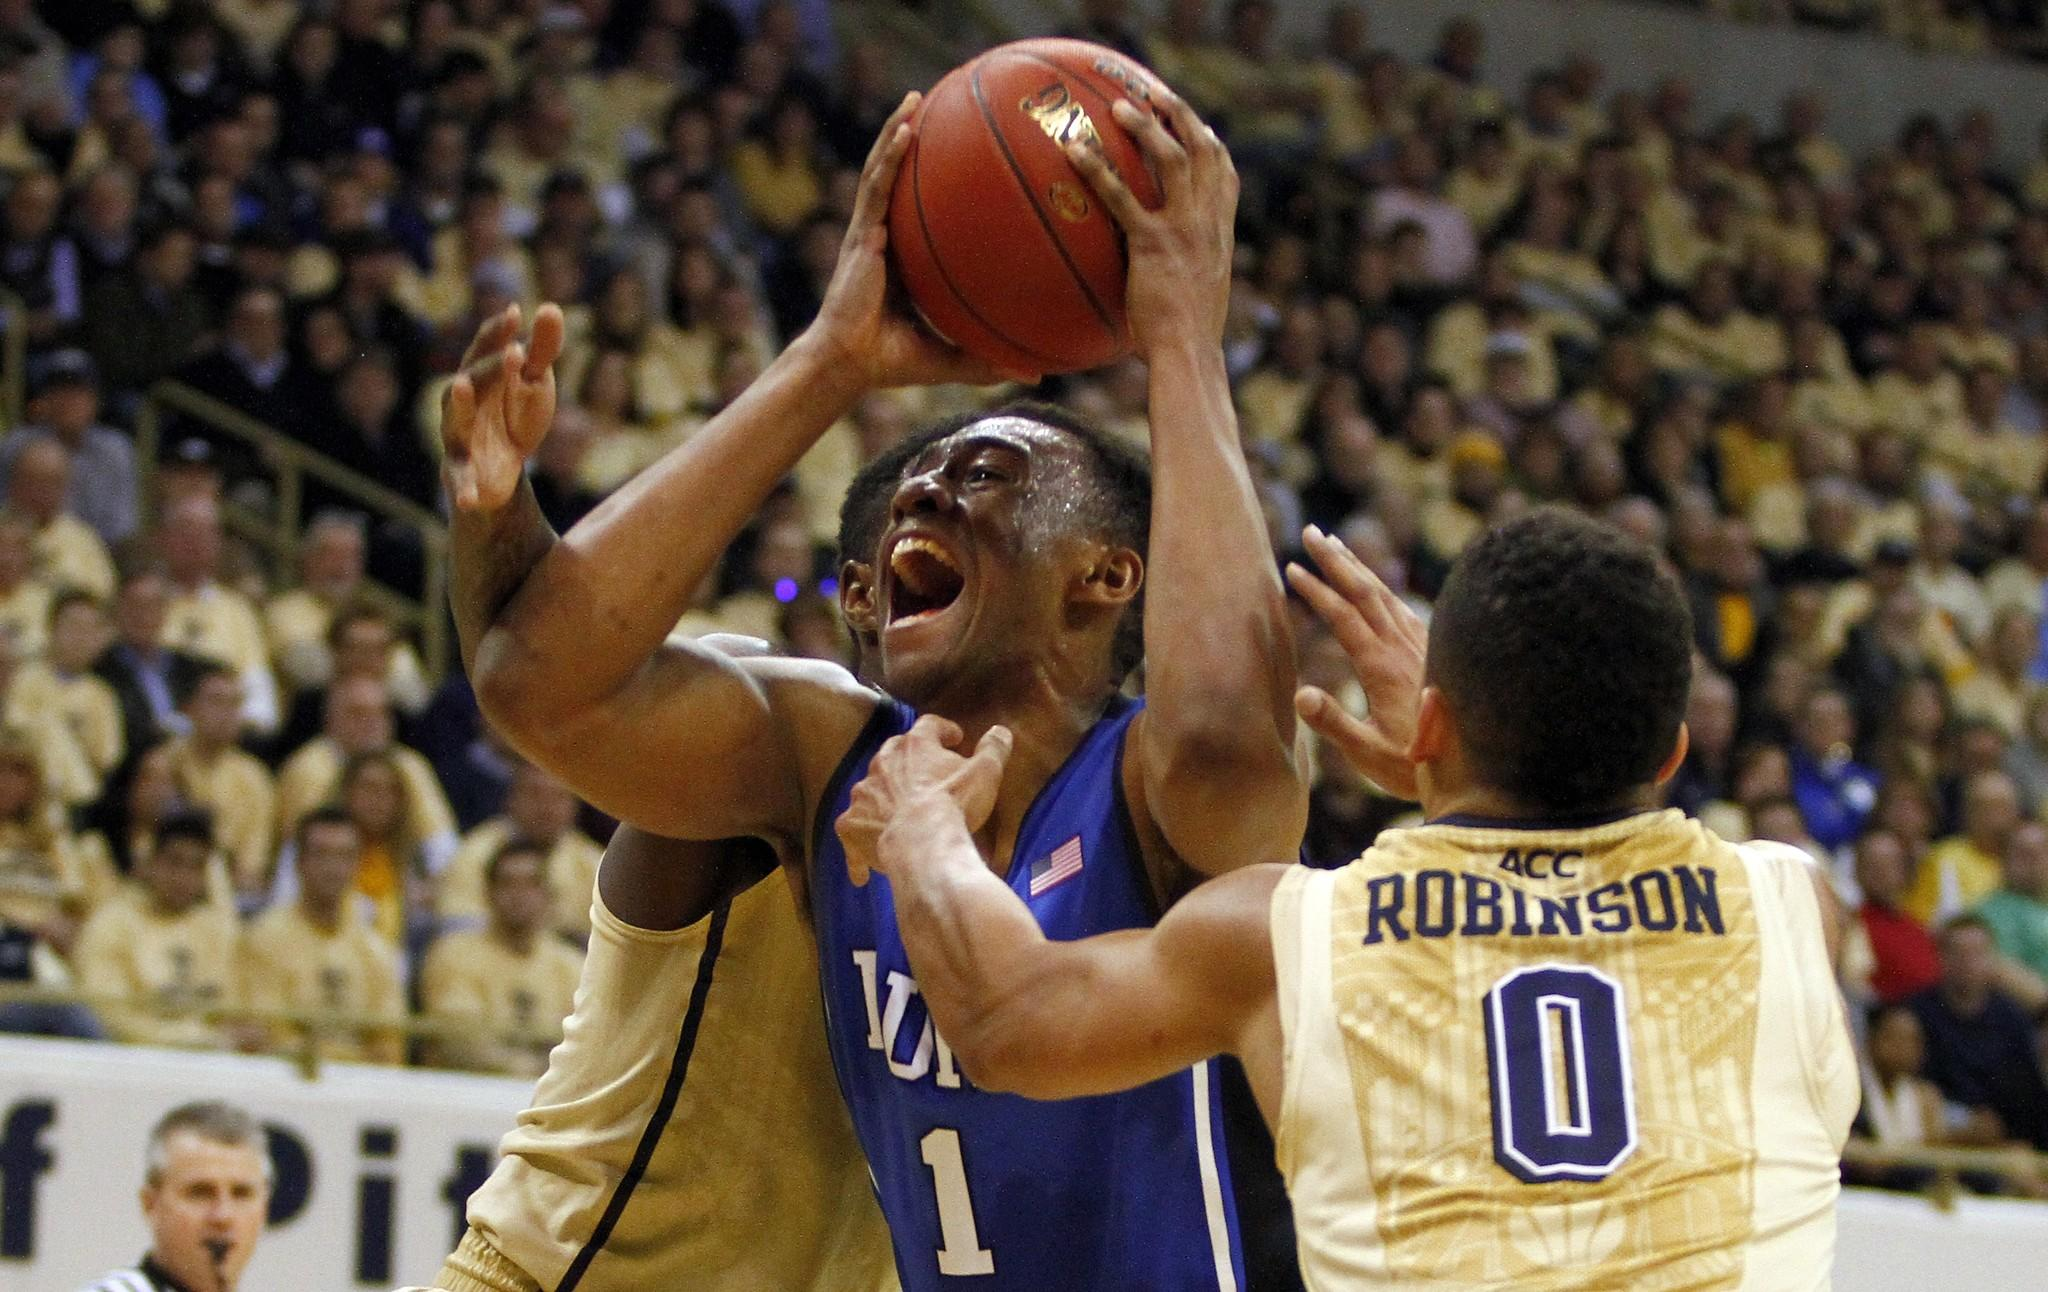 Duke's Jabari Parker drives to the hoop against Pitt's James Robinson.